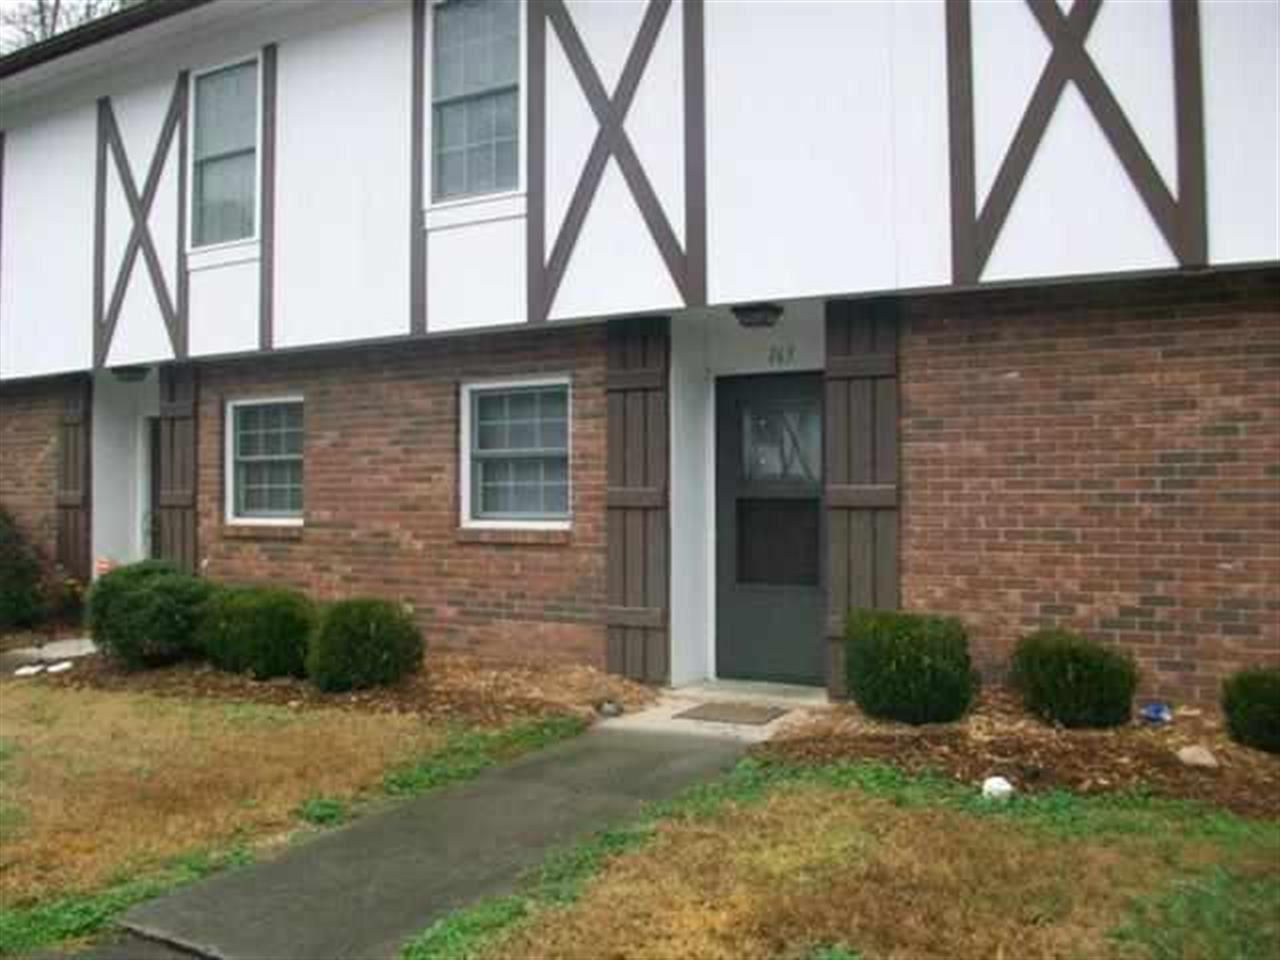 Rental Homes for Rent, ListingId:27531500, location: 1108 Tiger Blvd. #163 Clemson 29631